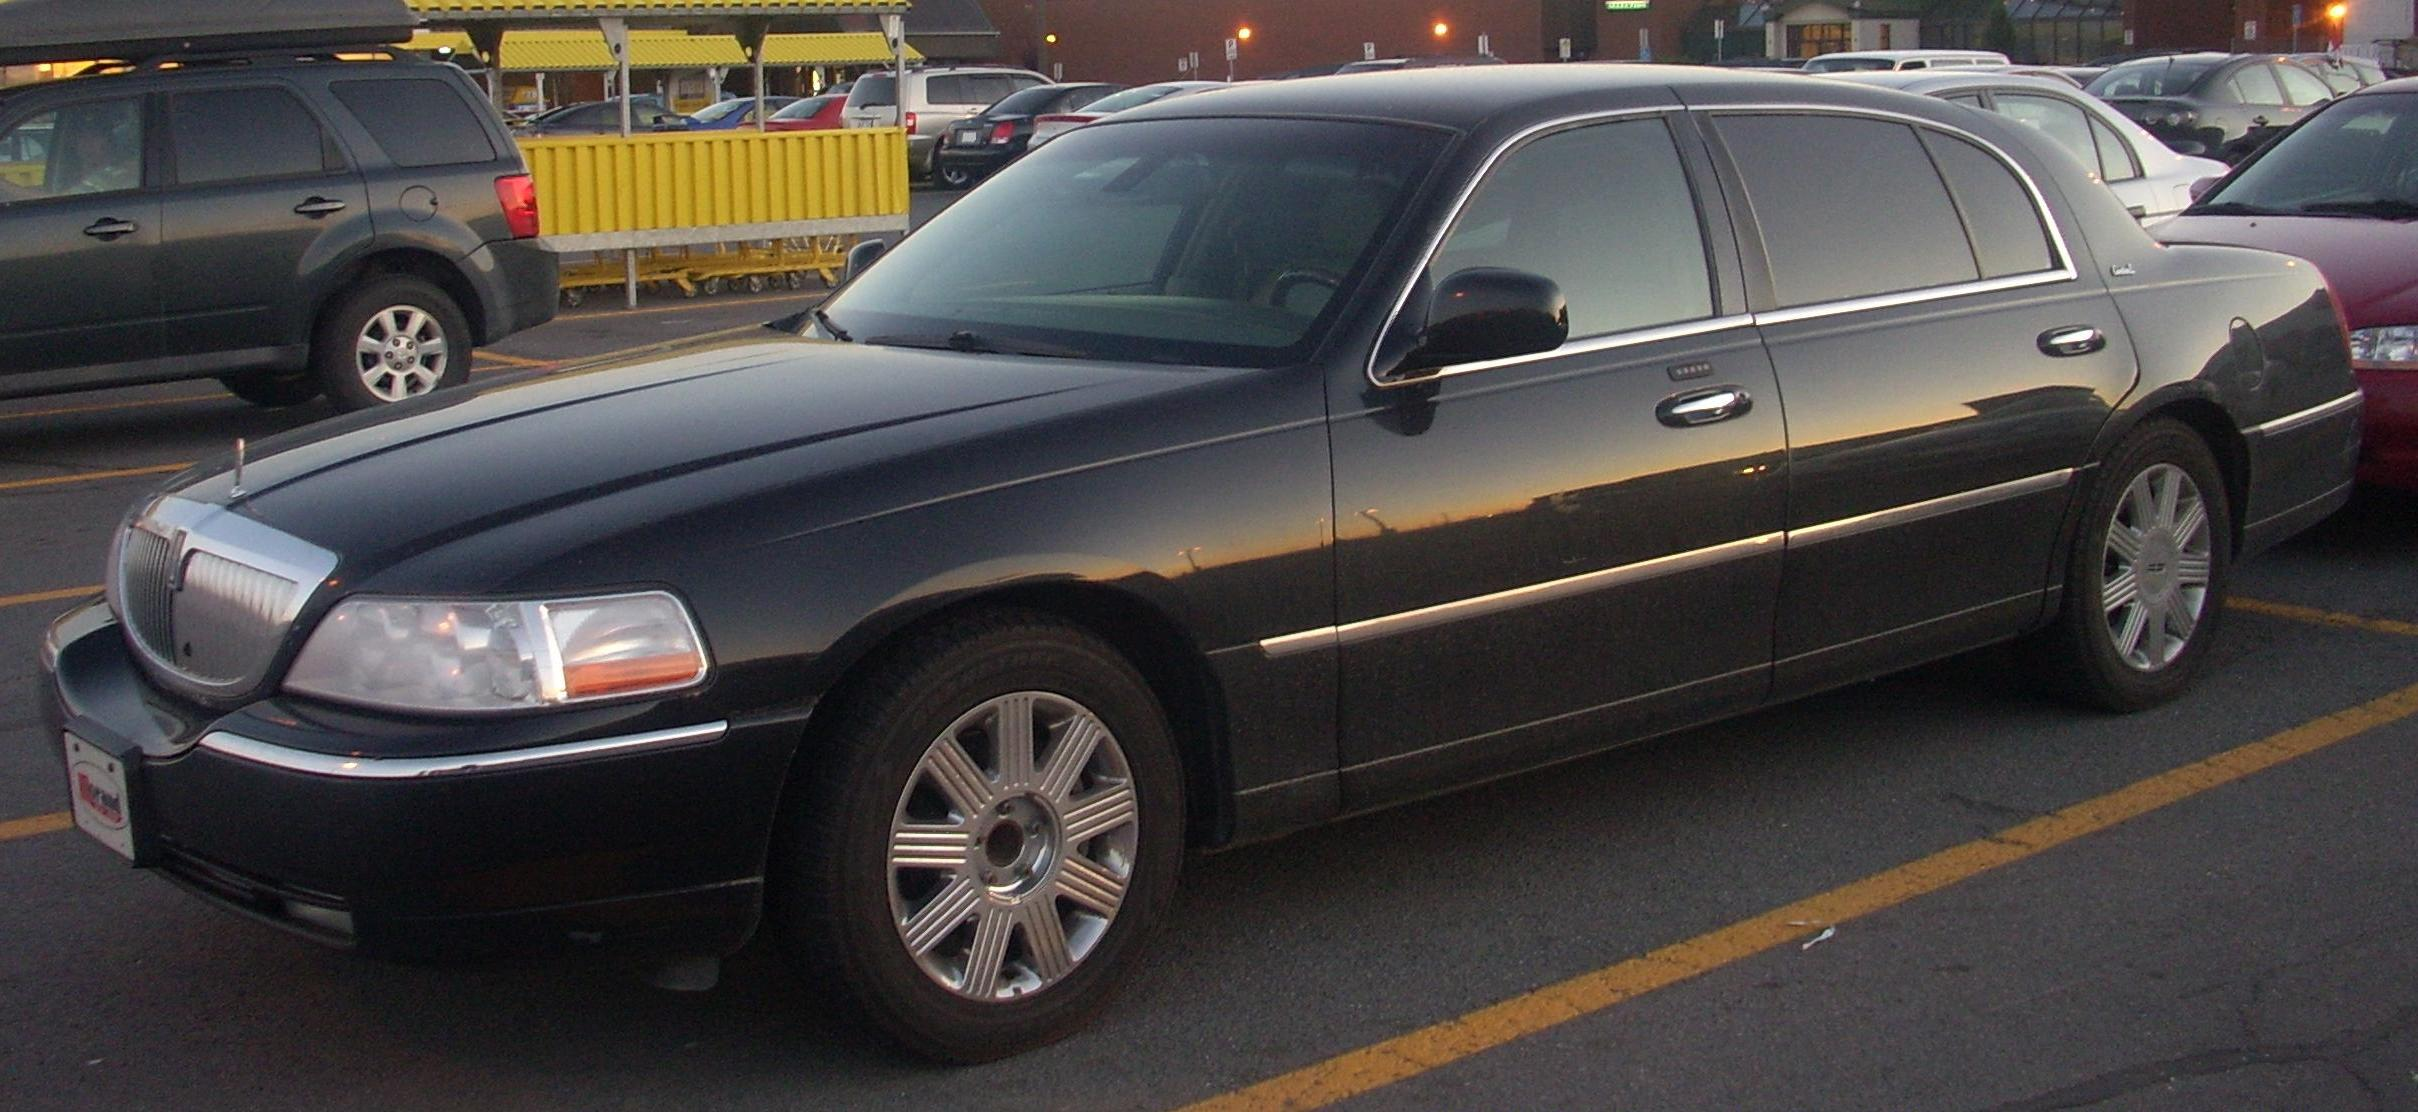 https://upload.wikimedia.org/wikipedia/commons/c/ce/Lincoln_Town_Car_Cartier_L.JPG